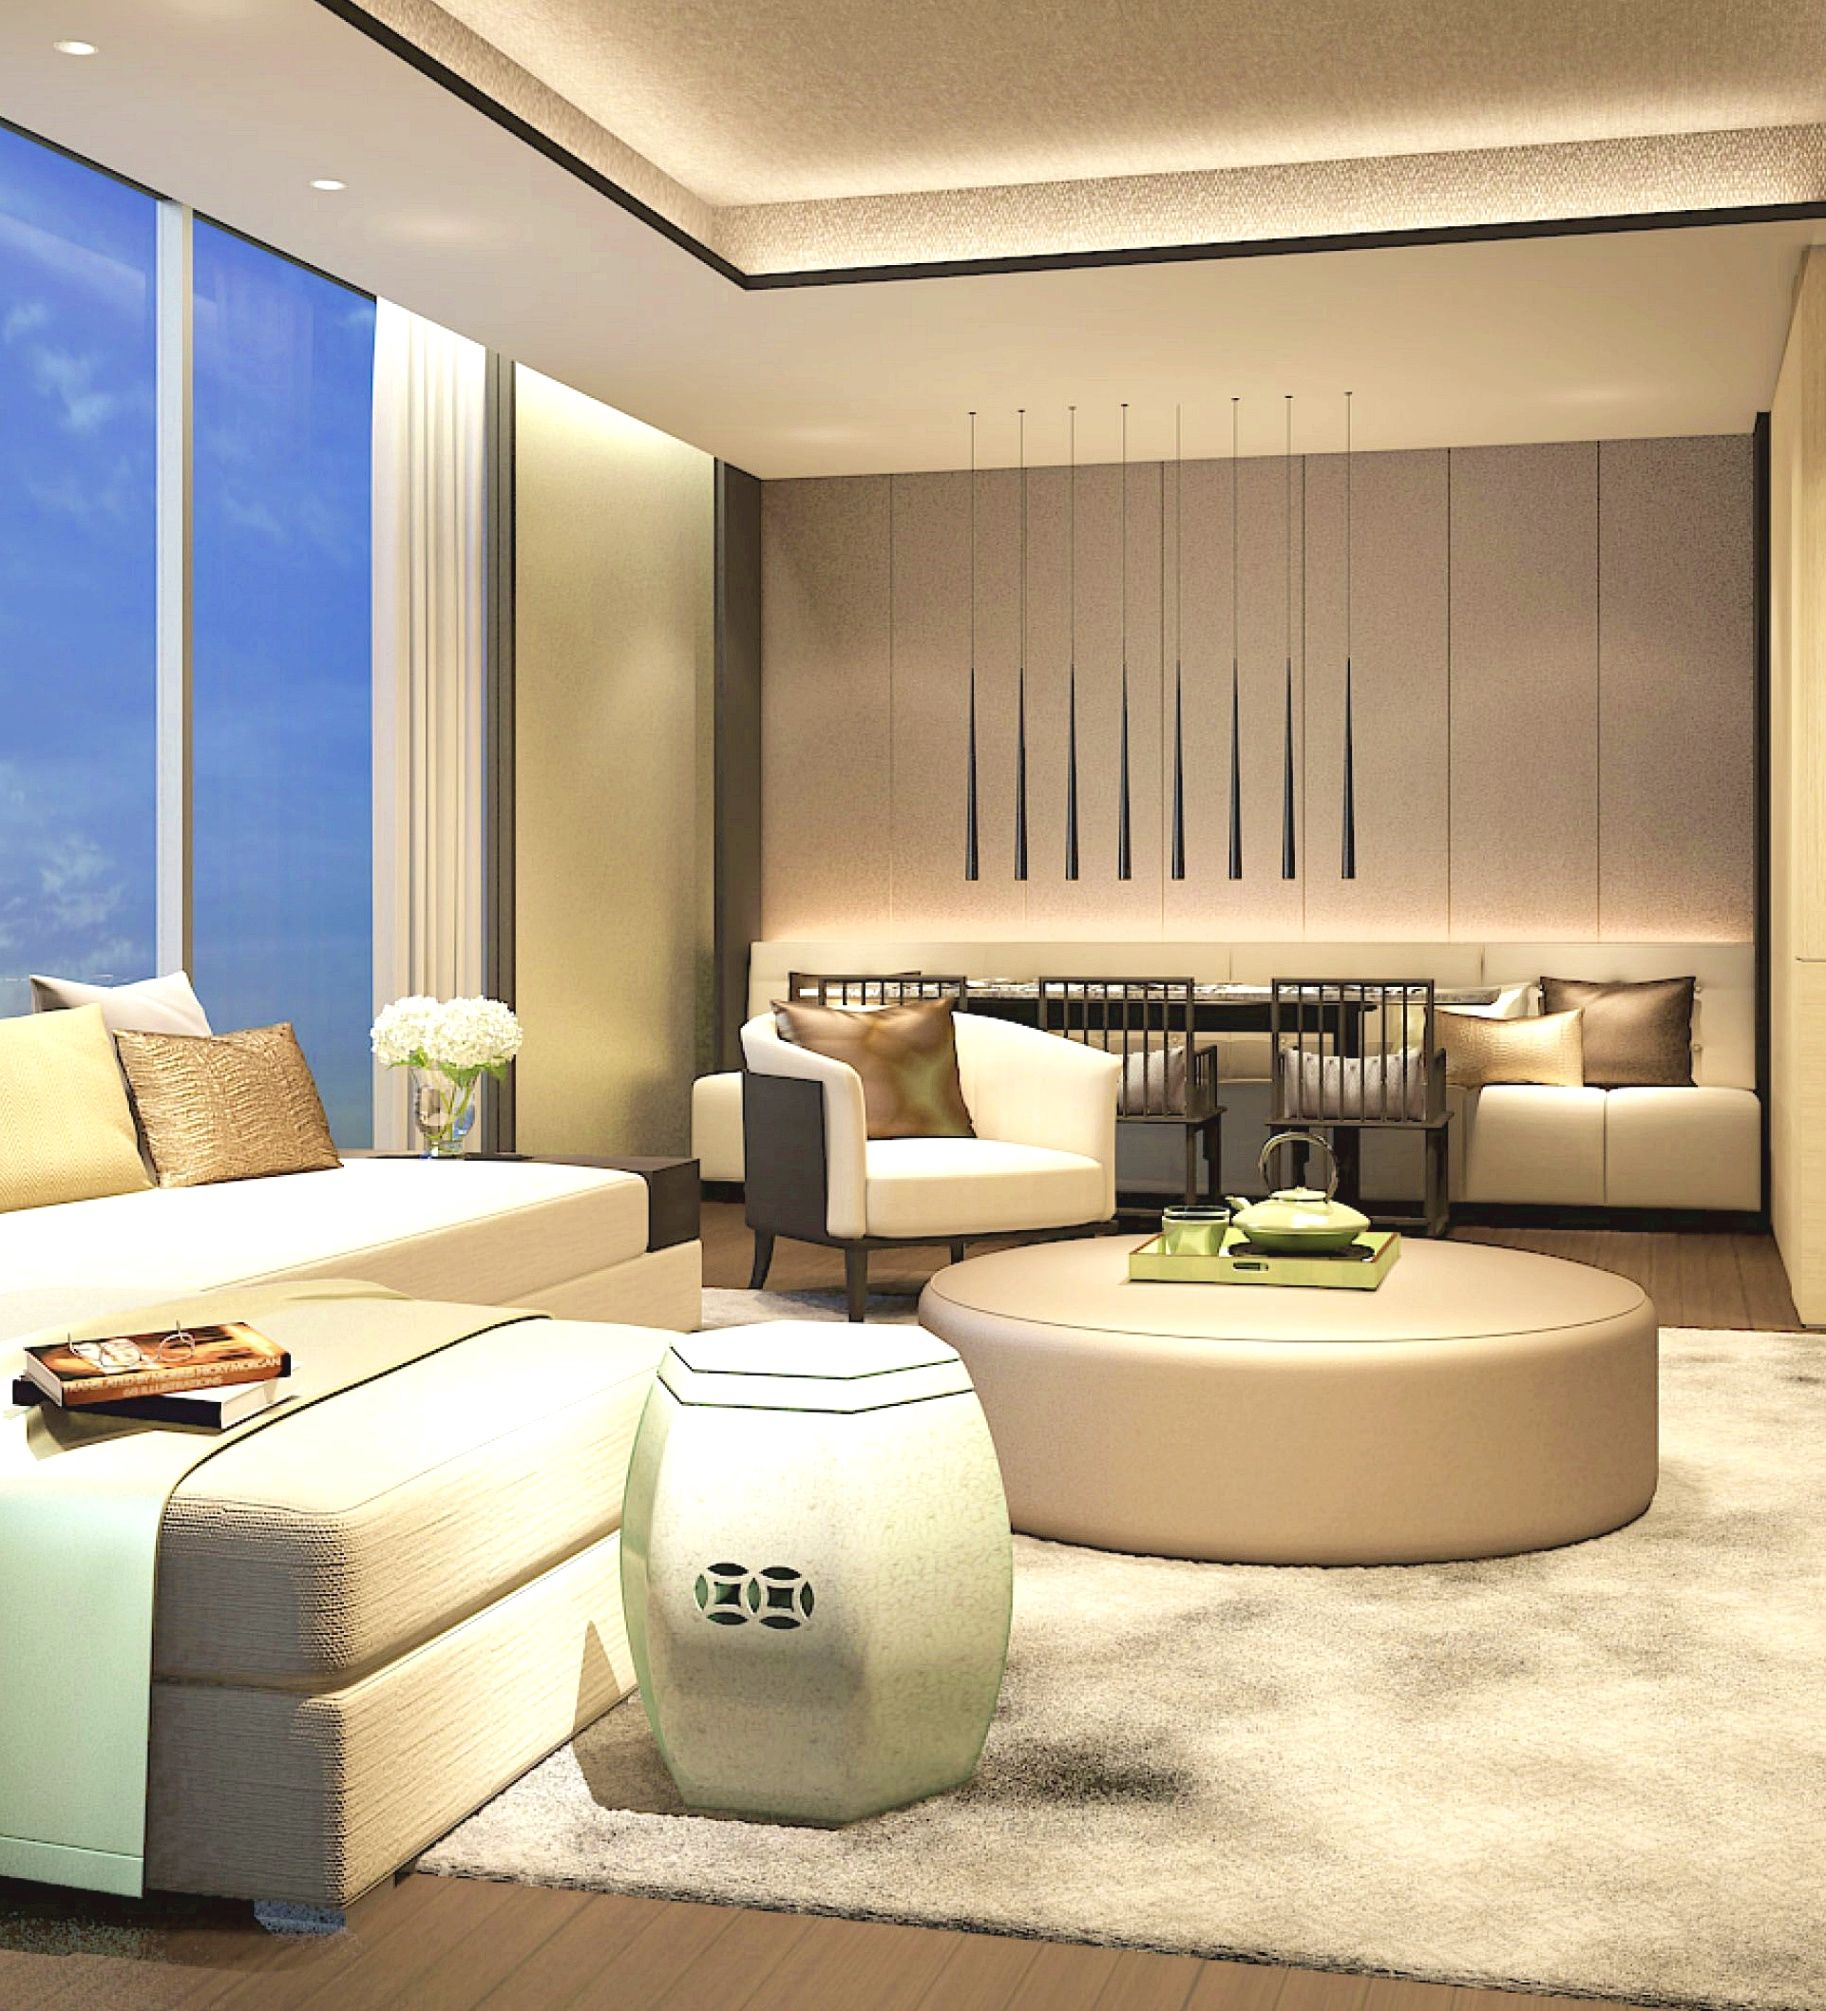 Living Room Decor Info Consider What Function Of Your Must Serve Prior To Deciding Make An Effort Decorate It Who May Be Present